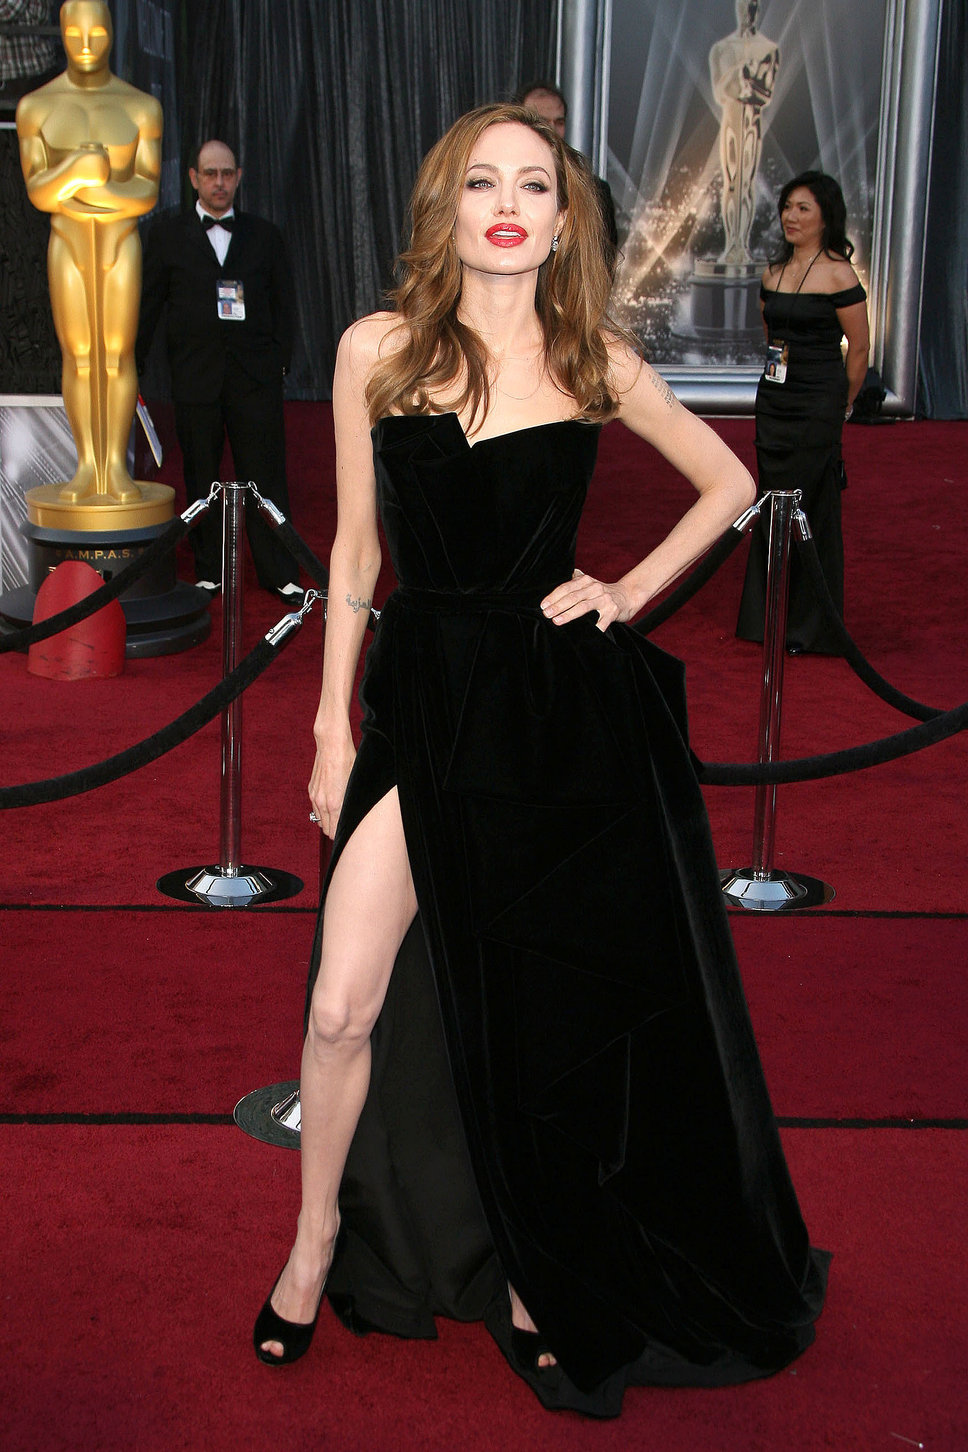 Angelina Jolie, in 2013, wearing a black dress by Versace, doing her (in)famous leg pose!